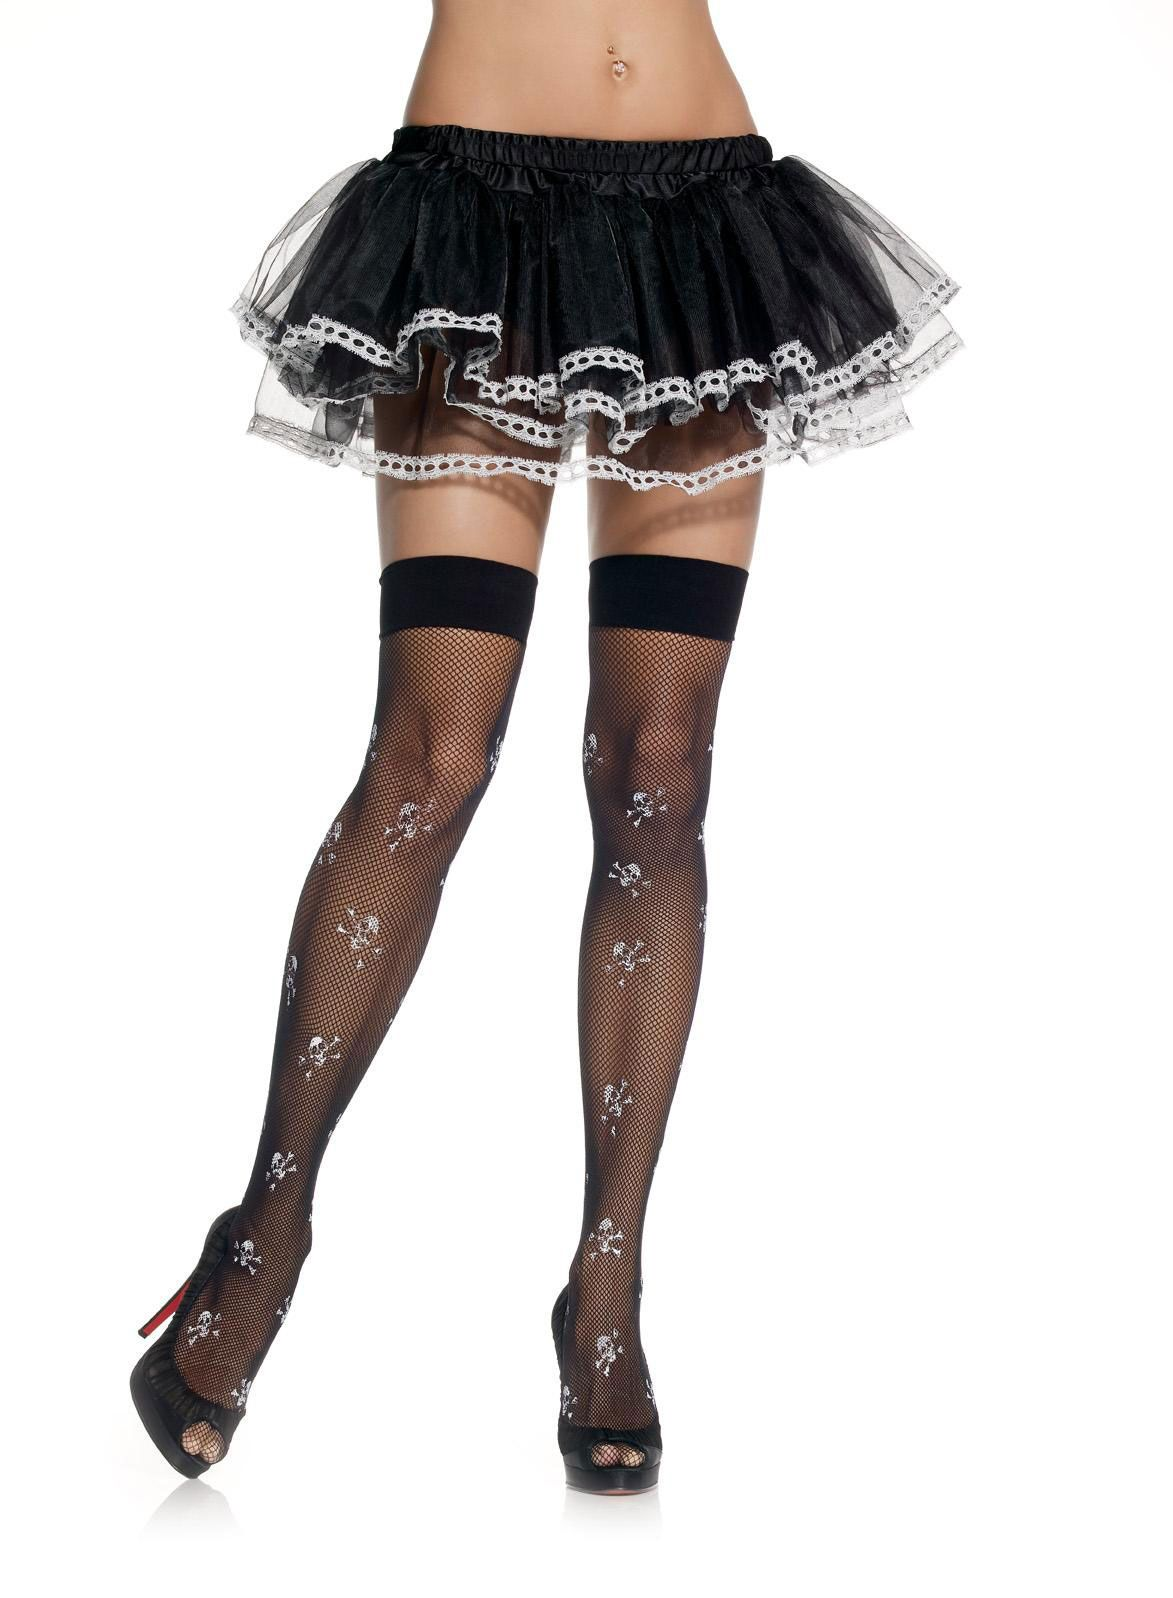 Skull and crossbones black lace stockings.